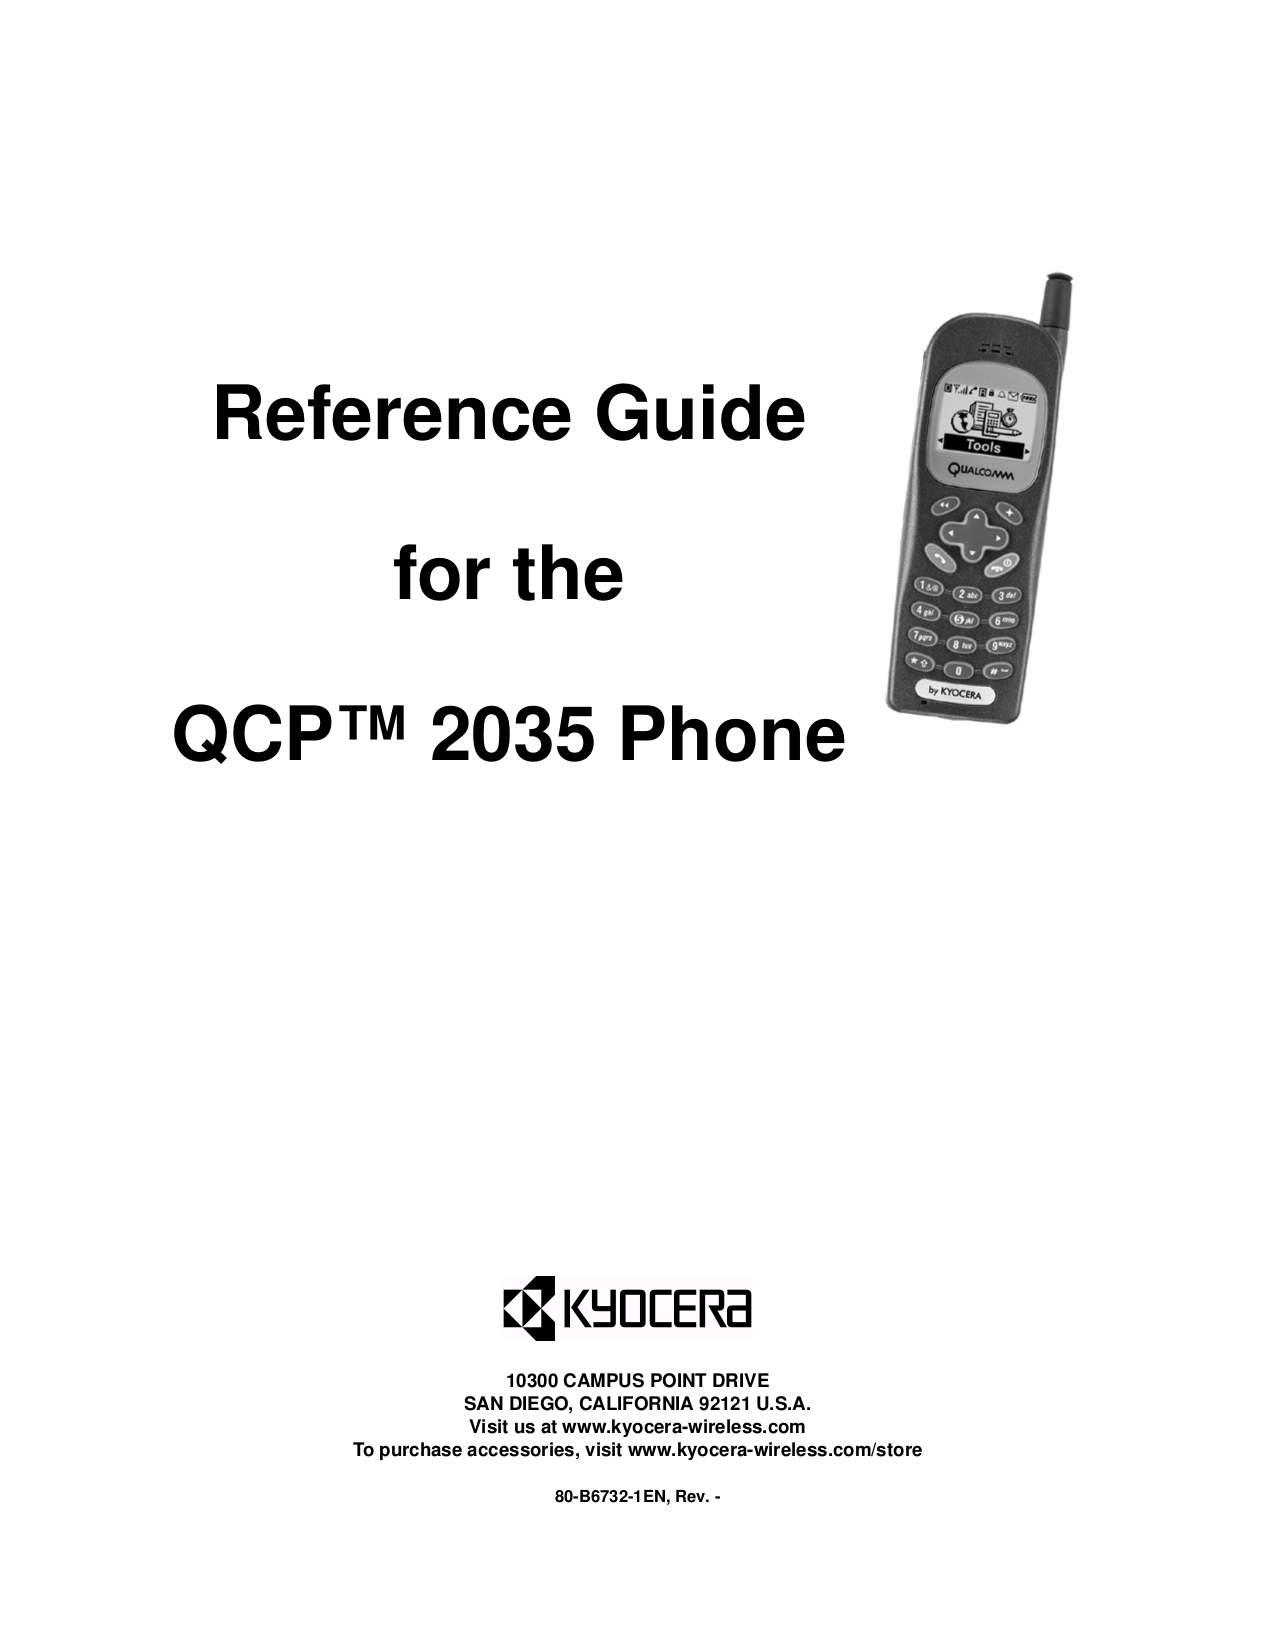 Download free pdf for Kyocera QCP 2035 Cell Phone manual